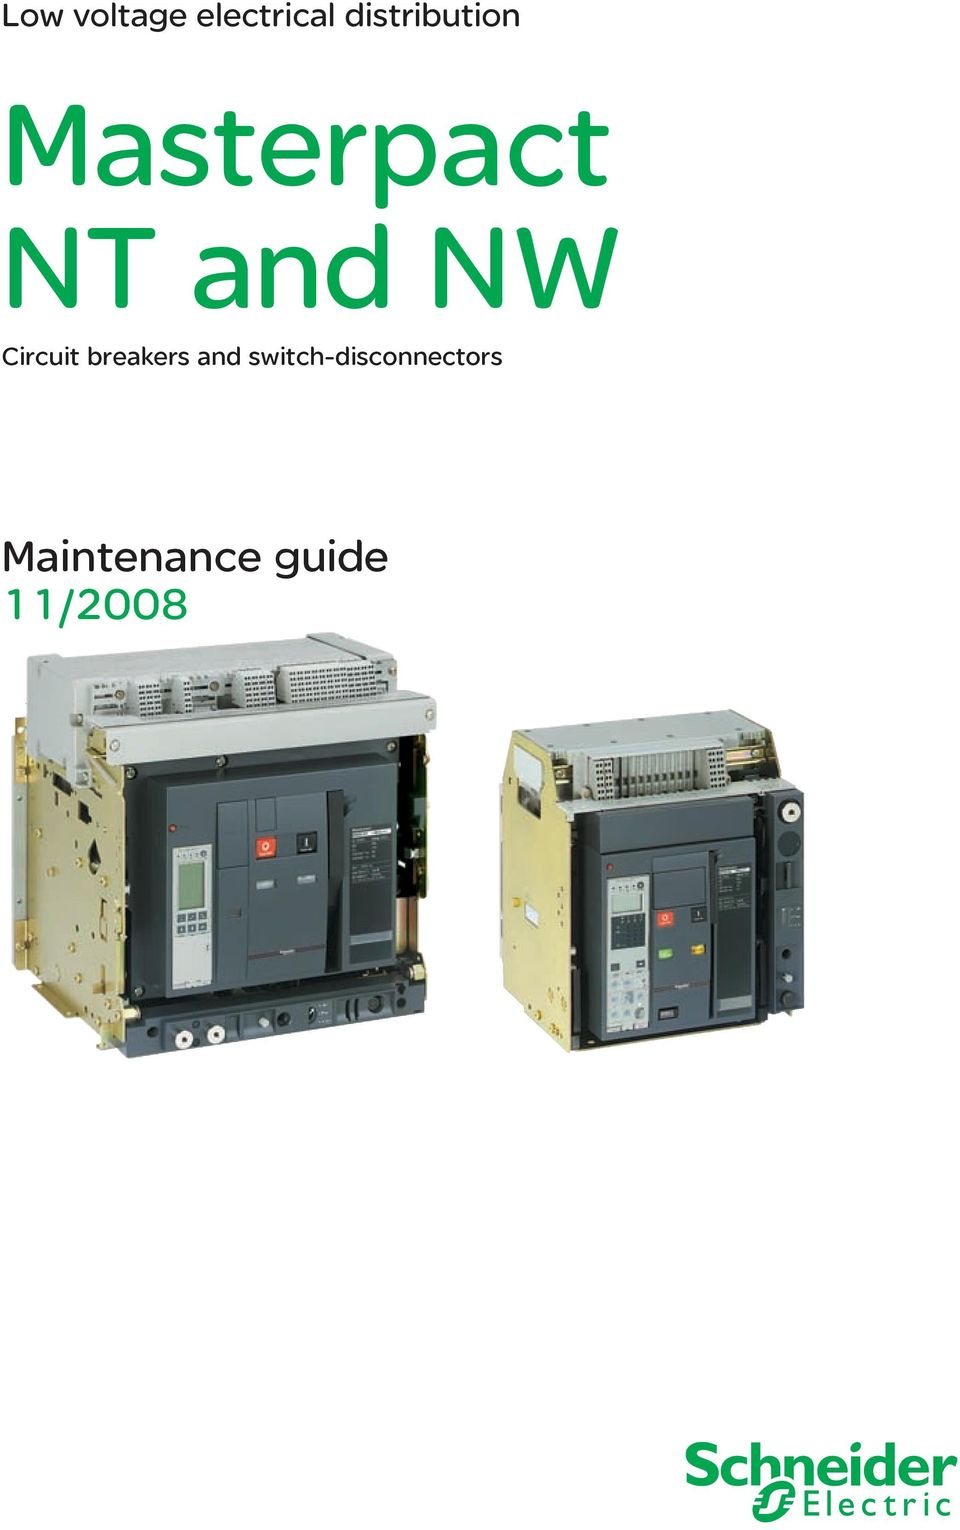 Masterpact Nt And Nw Circuit Breakers Switch Disconnectors Pdf Arcfault Prevent Fires Absolute Electric